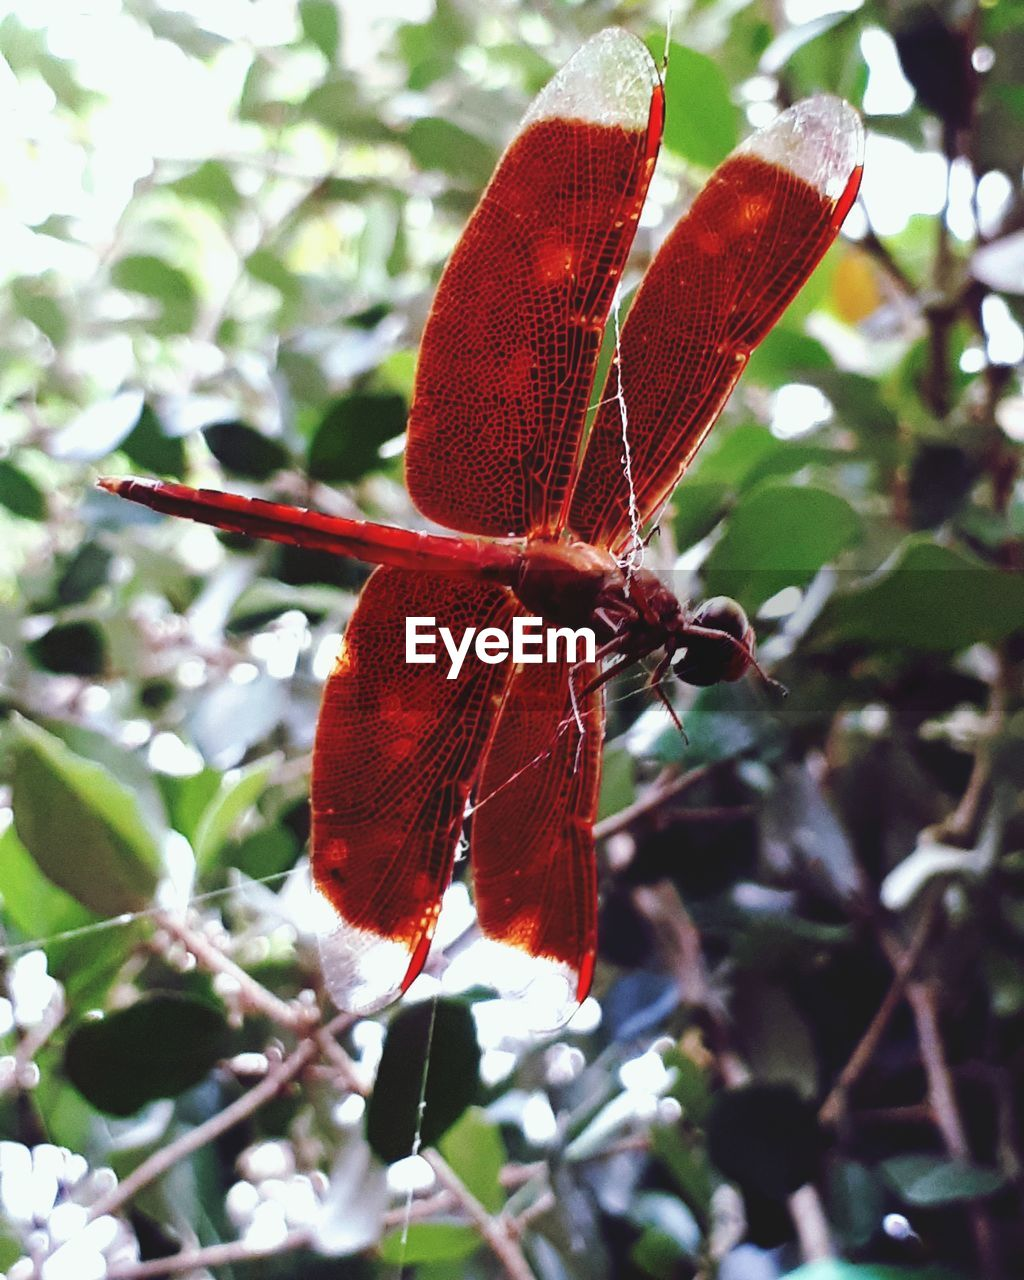 plant, close-up, red, beauty in nature, invertebrate, animals in the wild, animal wing, focus on foreground, nature, no people, growth, insect, animal themes, one animal, animal, animal wildlife, day, flower, plant part, leaf, butterfly - insect, outdoors, butterfly, flower head, pollination